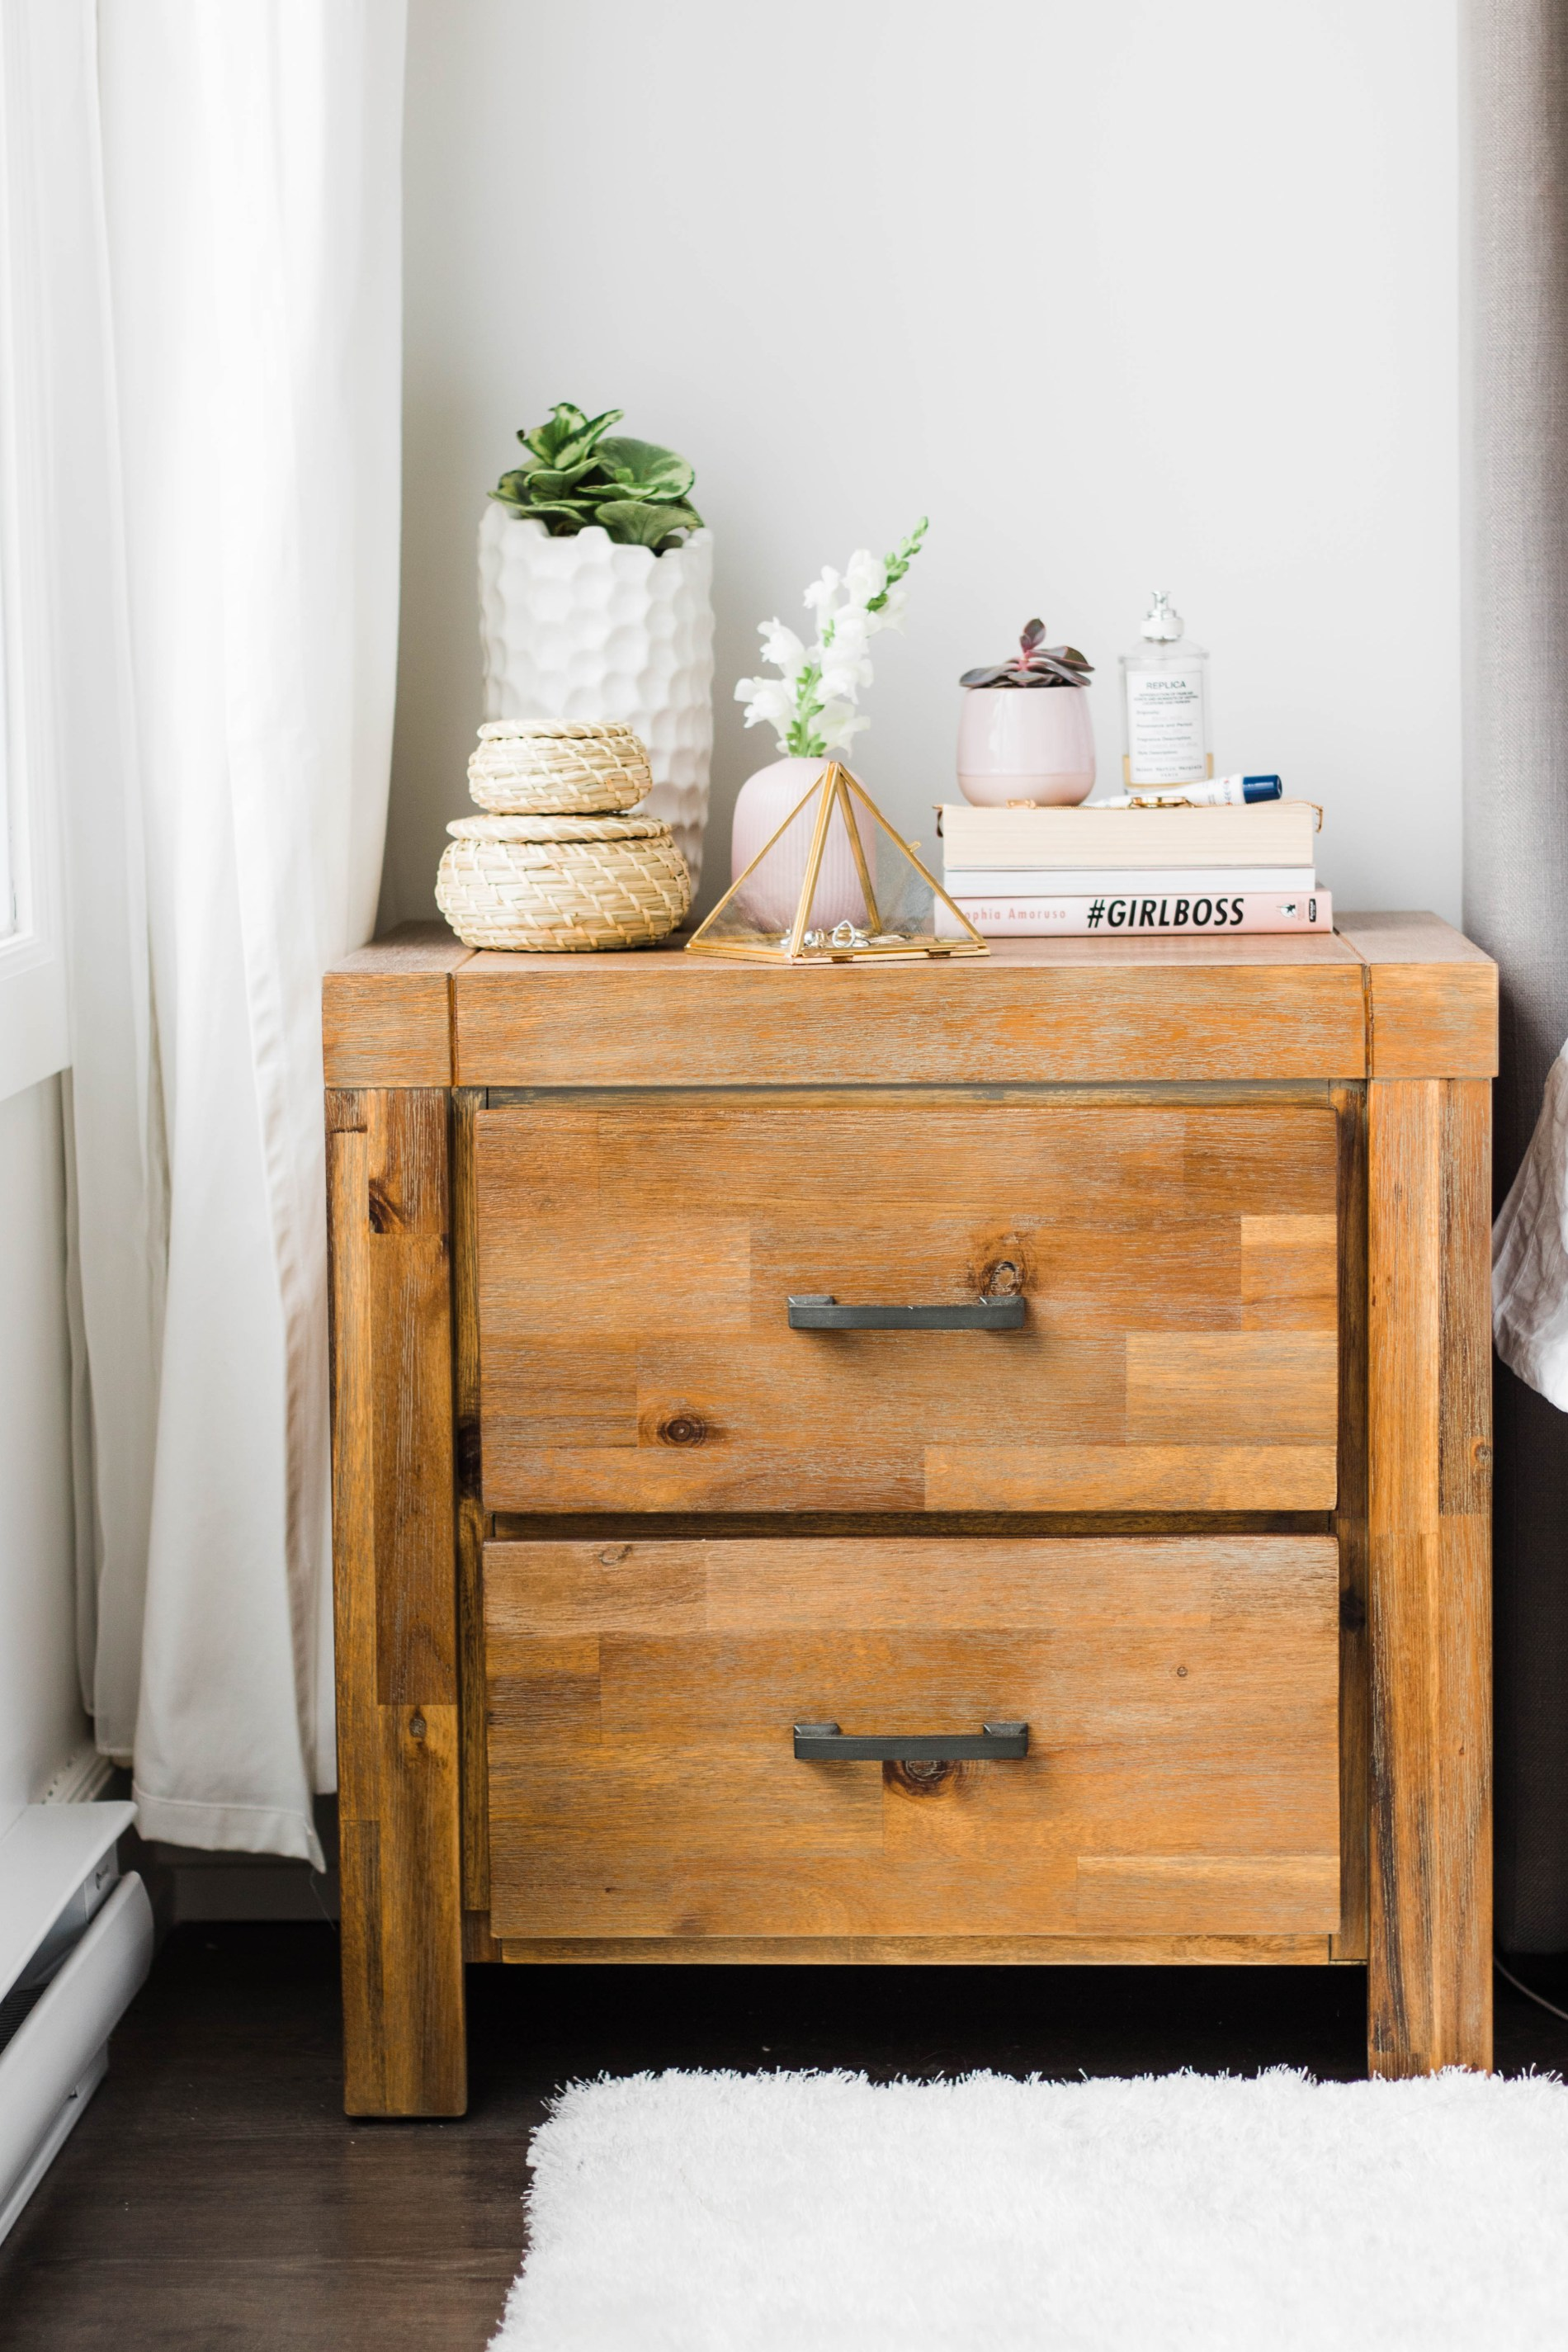 Styling a Nightstand: A minimalist Approach #homestyle #homedecor #bedroom